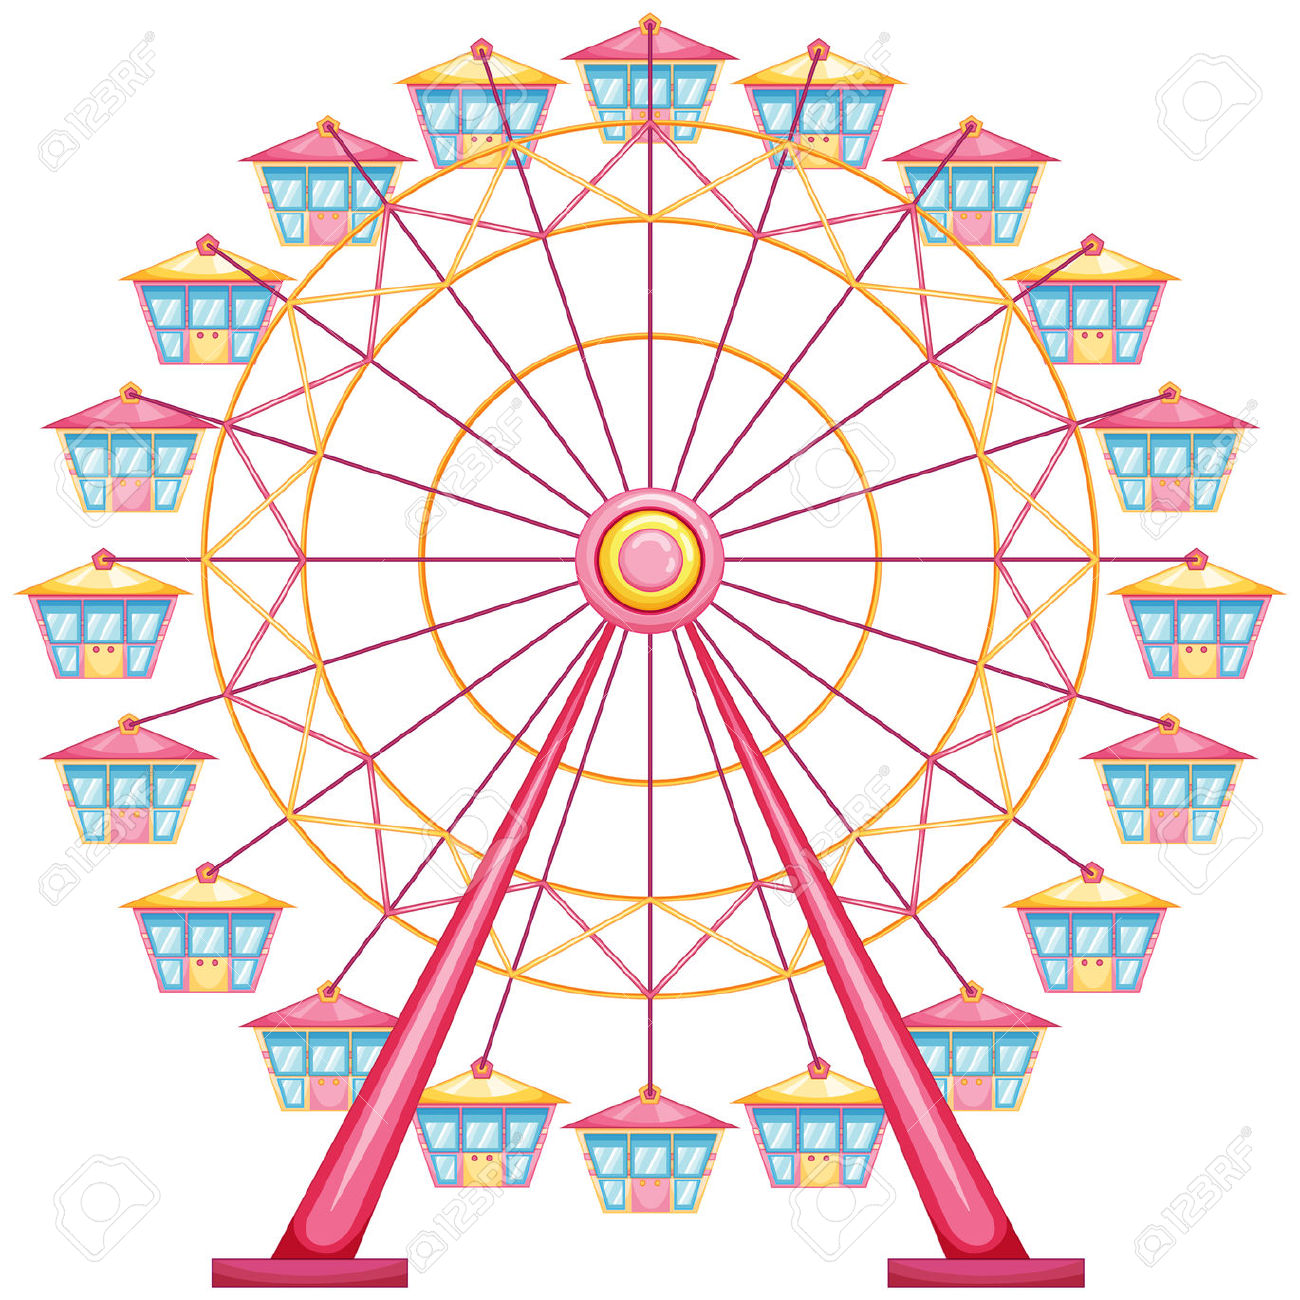 Ferris wheel clip art at vector clip art.